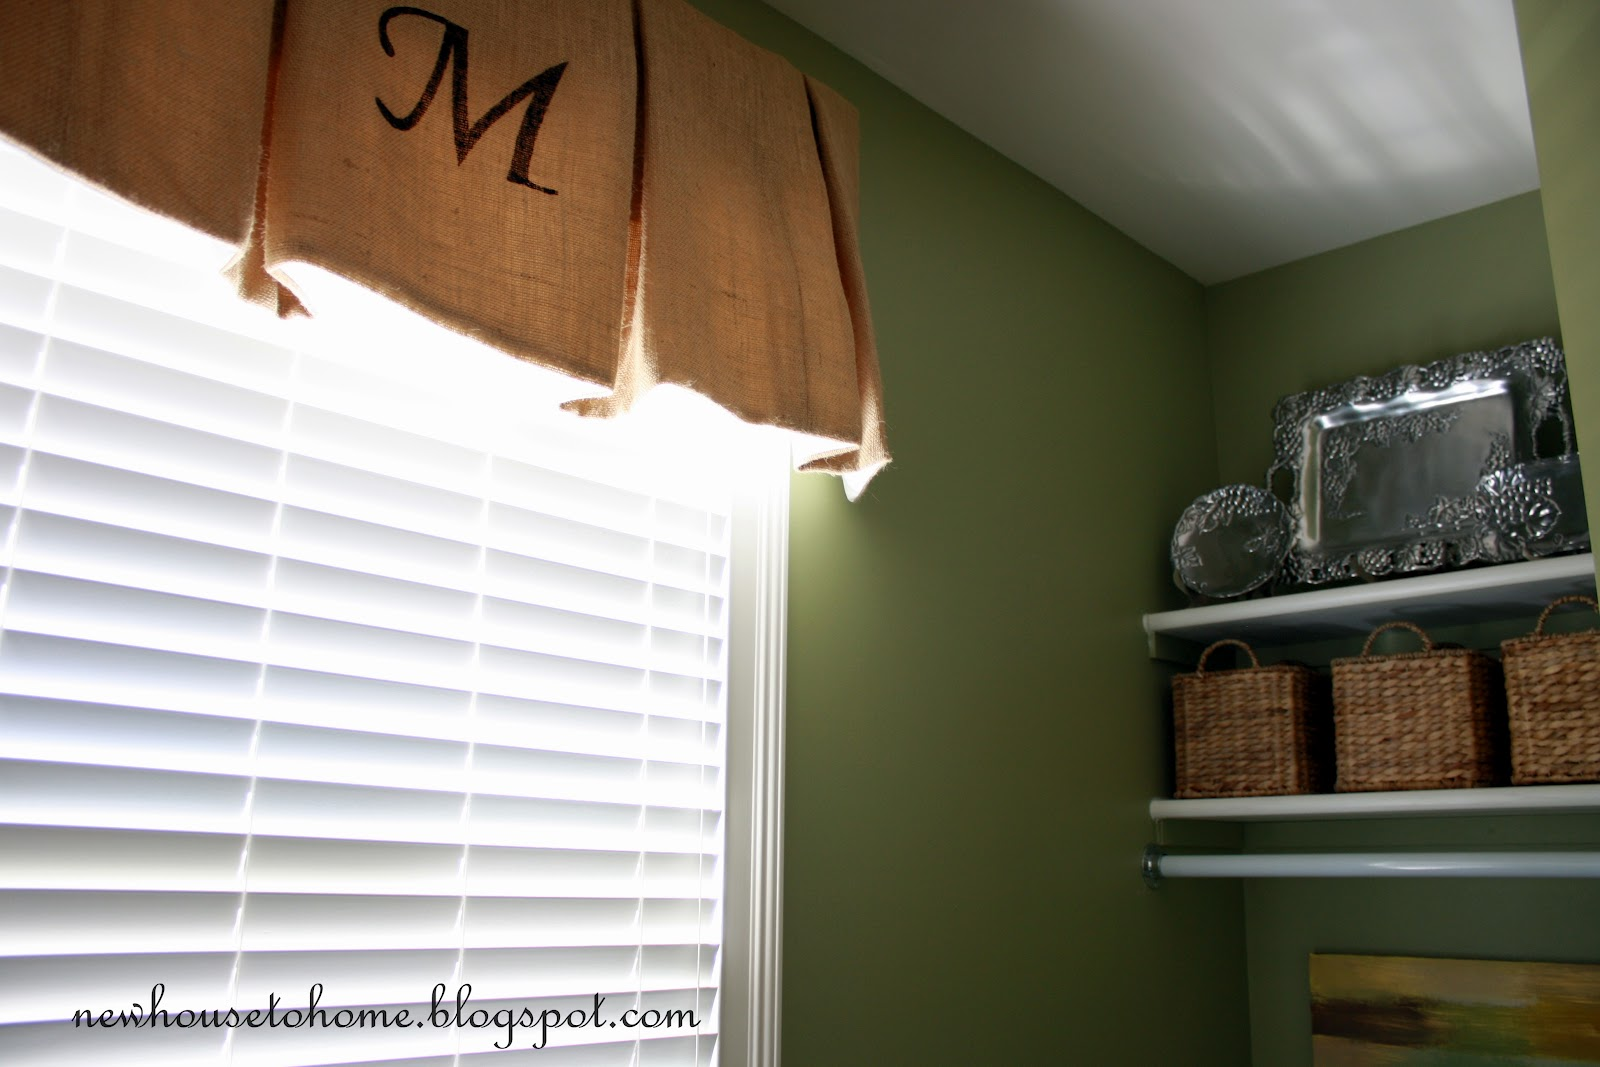 New House to Home: Laundry Room Reveal